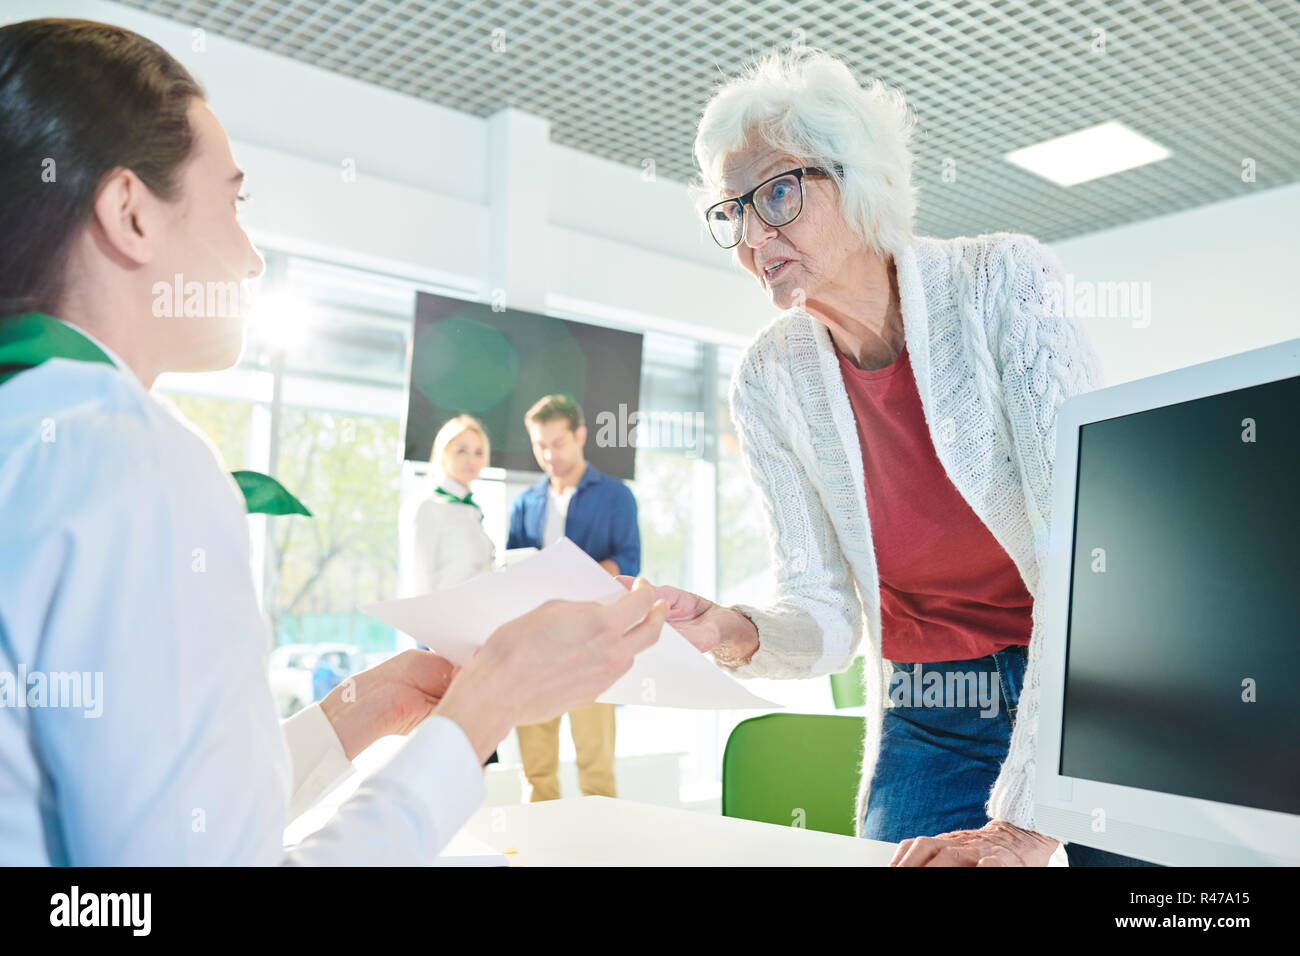 Outraged senior lady speaking loudly in travel agency office - Stock Image